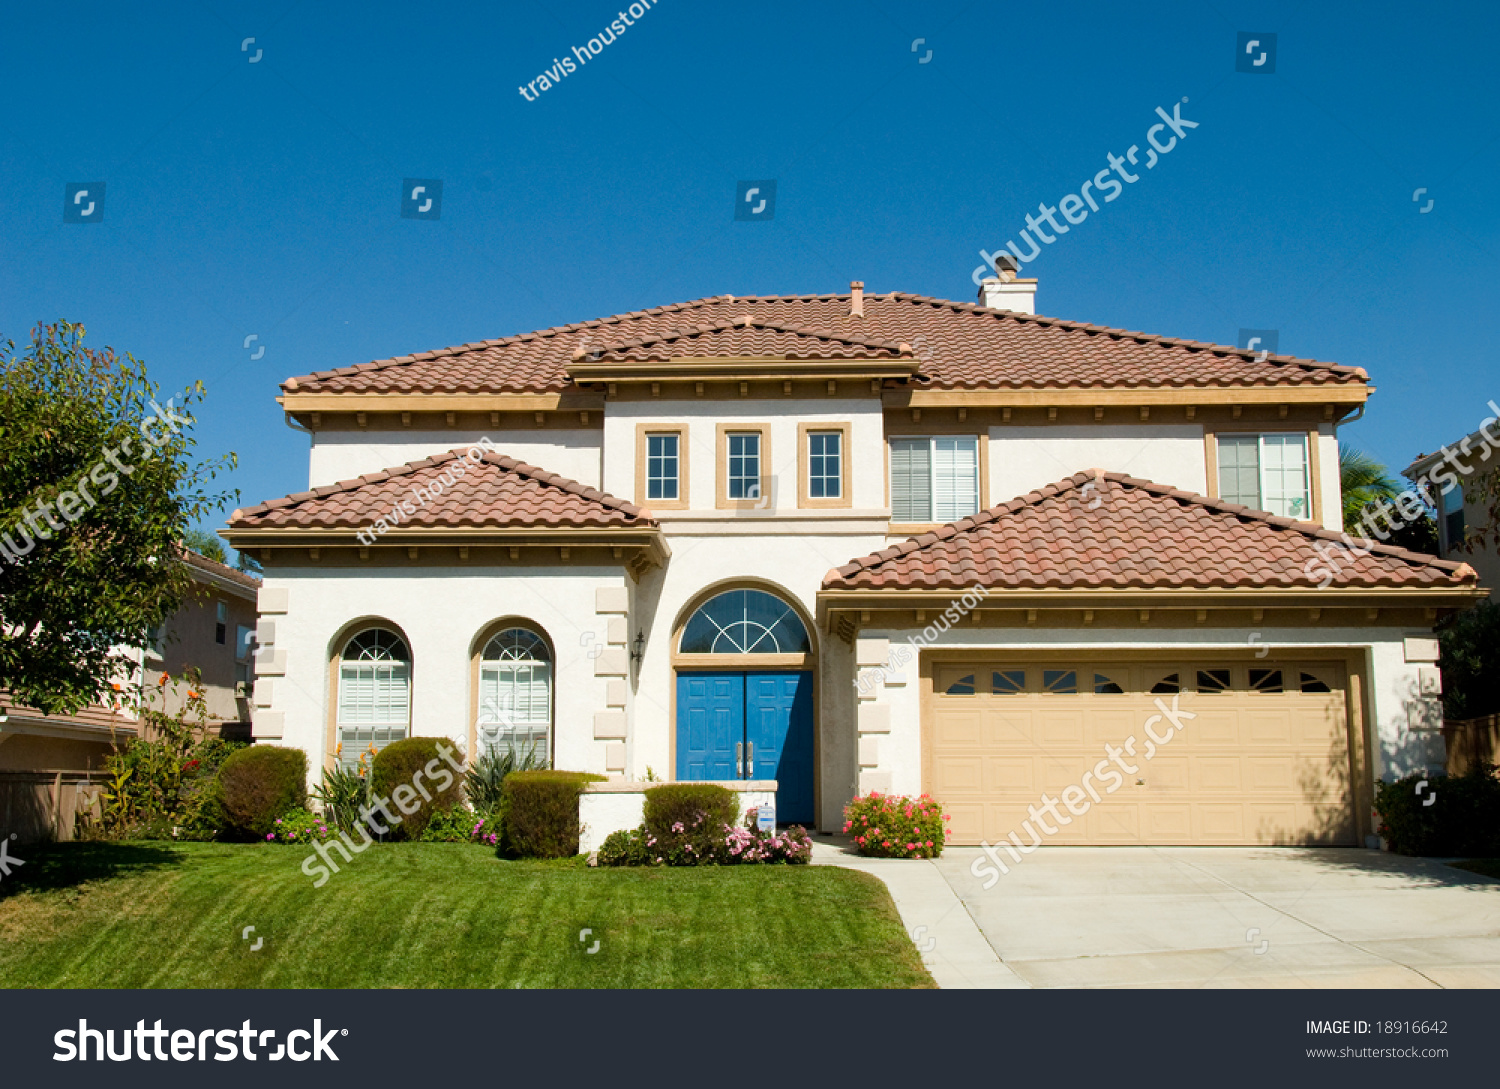 Spanish style contemporary house with green grass yard and for Spanish style homes for sale near me